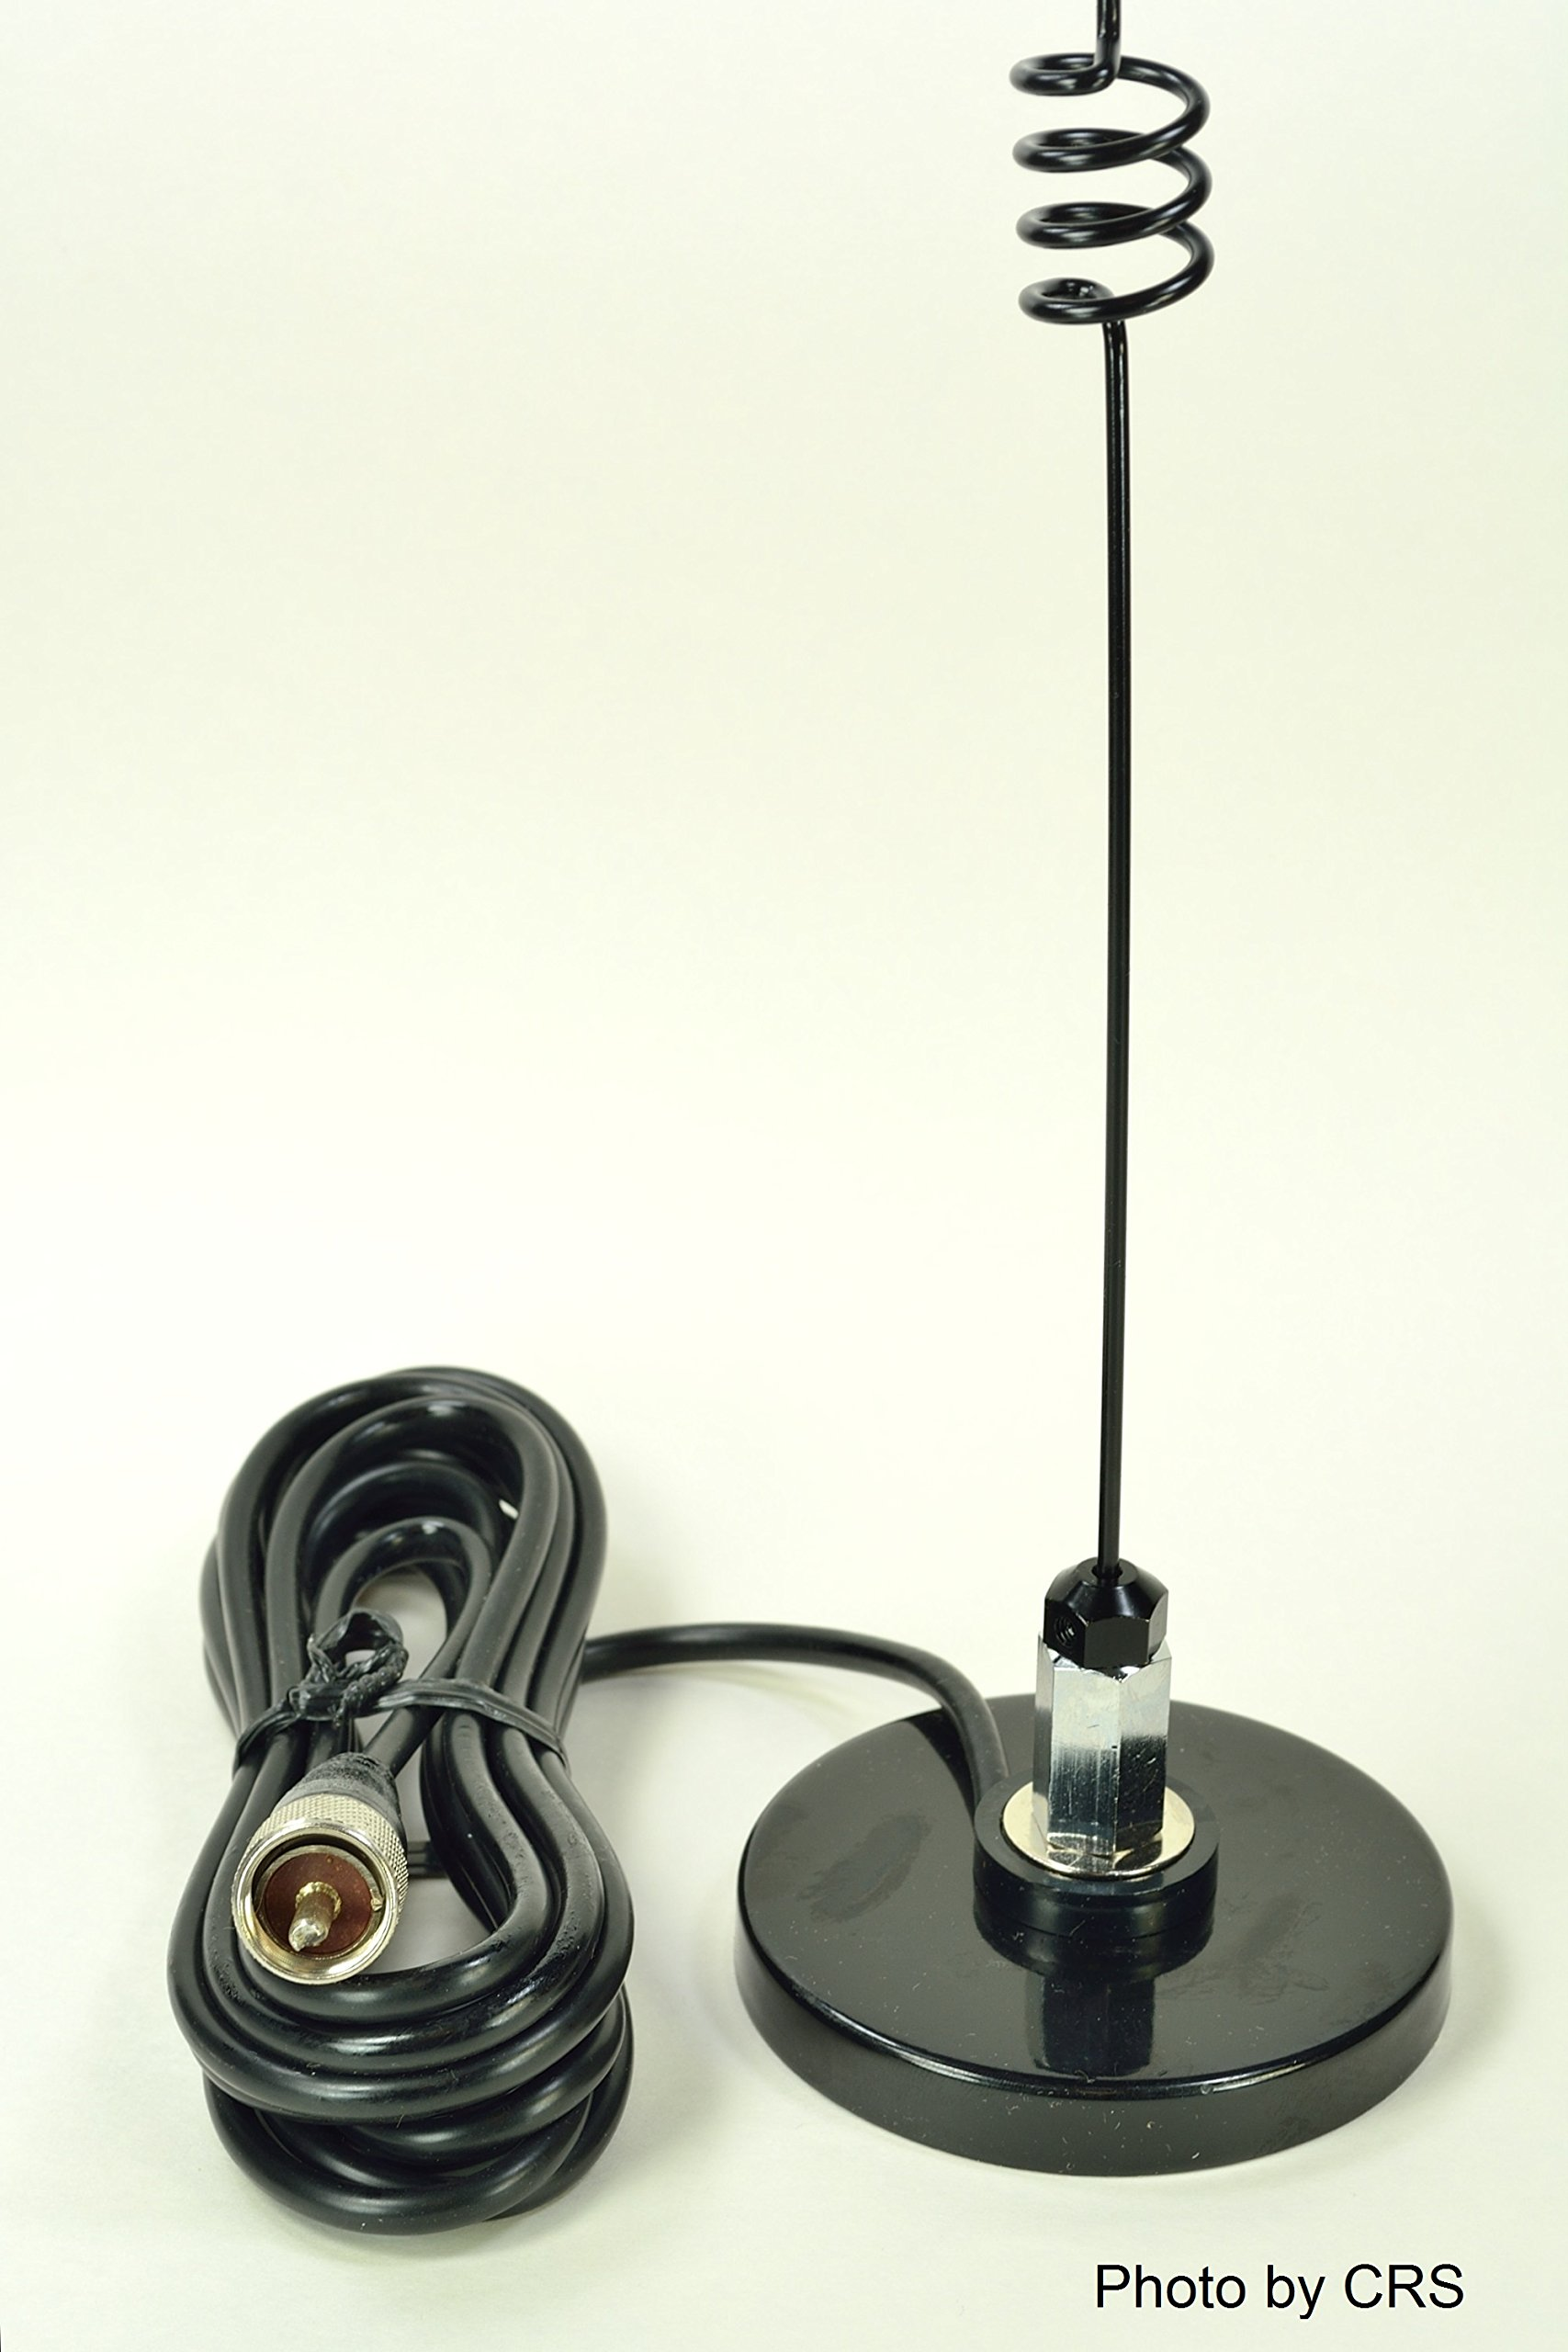 Workman Magnetic Mobile Antenna Ham Radio 2 Meter/70 cm 140 to 150 and 440 to 470 MHz KRDB